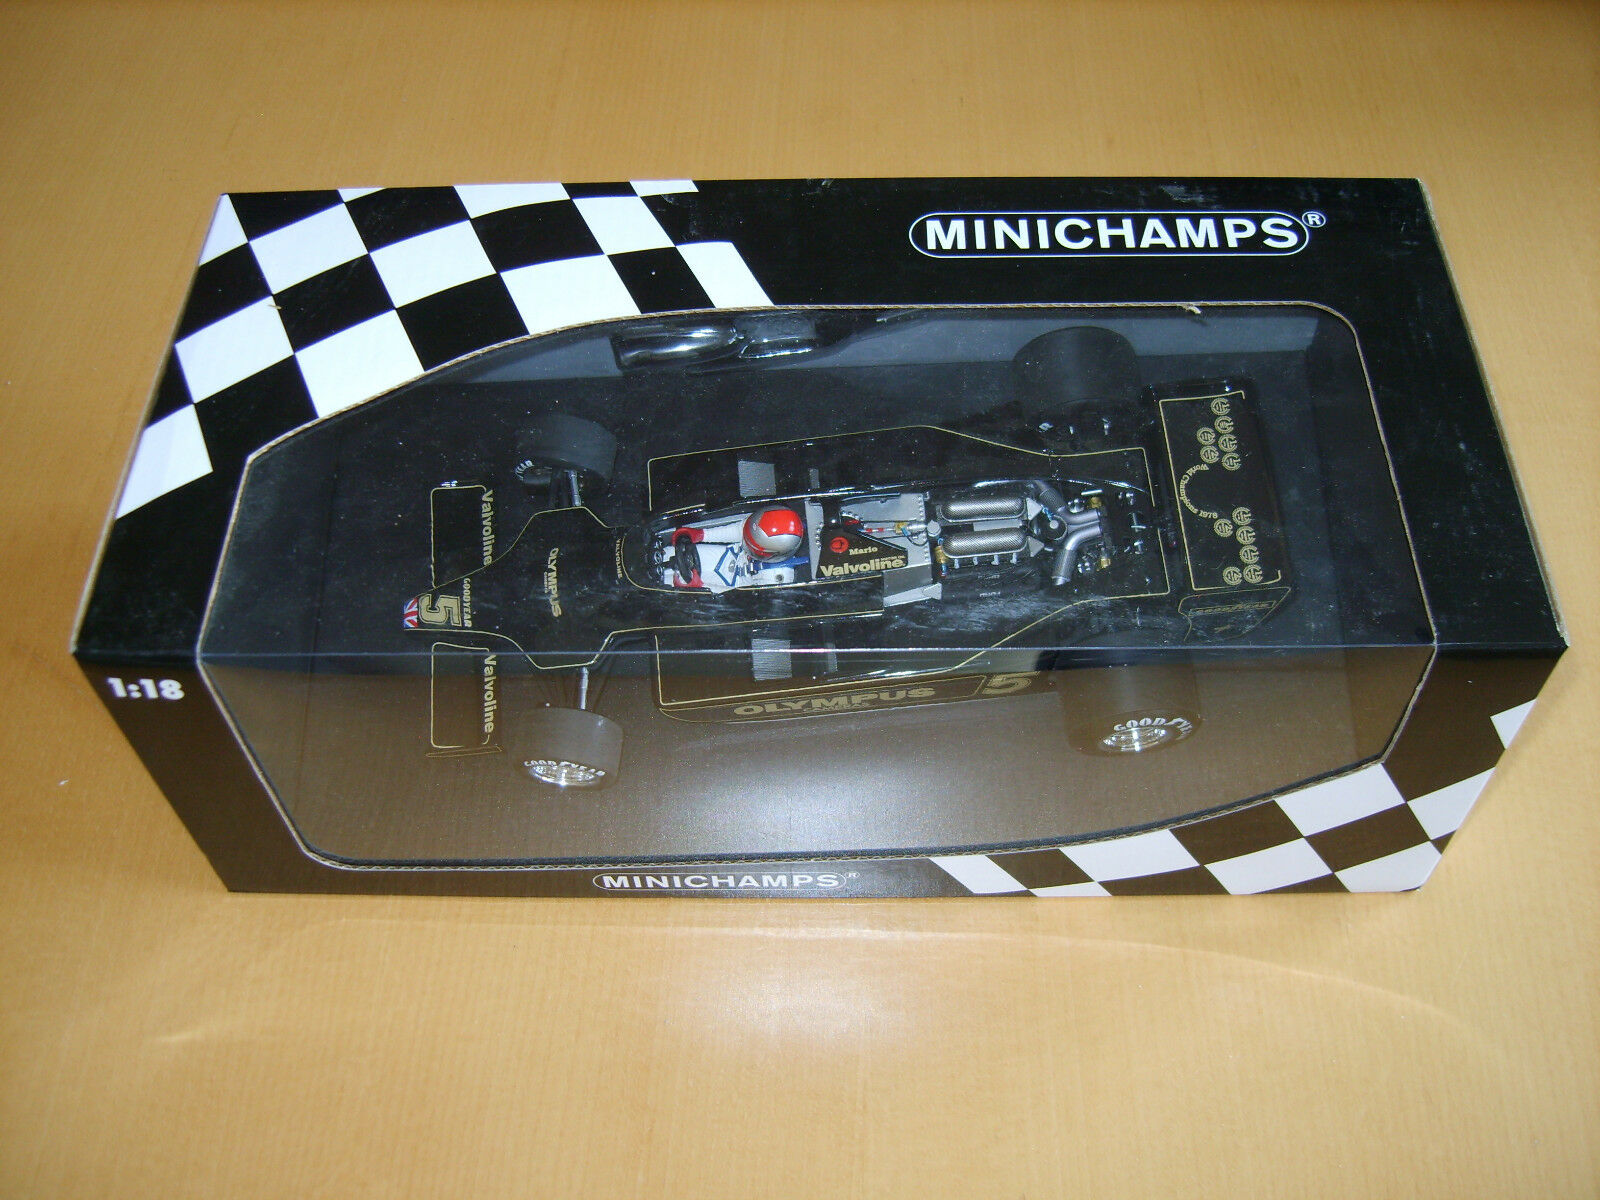 MINICHAMPS LOTUS 79 Mario Andretti 1978 World Champion F1 NEW 100780005